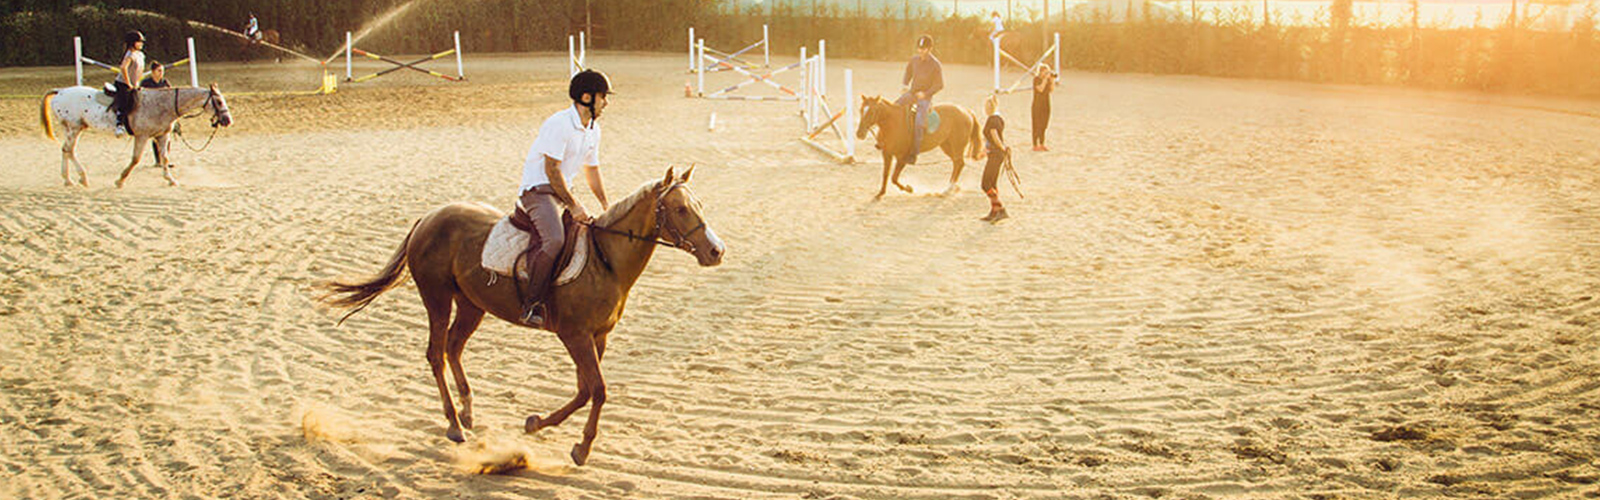 Concierge Belgrade | Horse riding